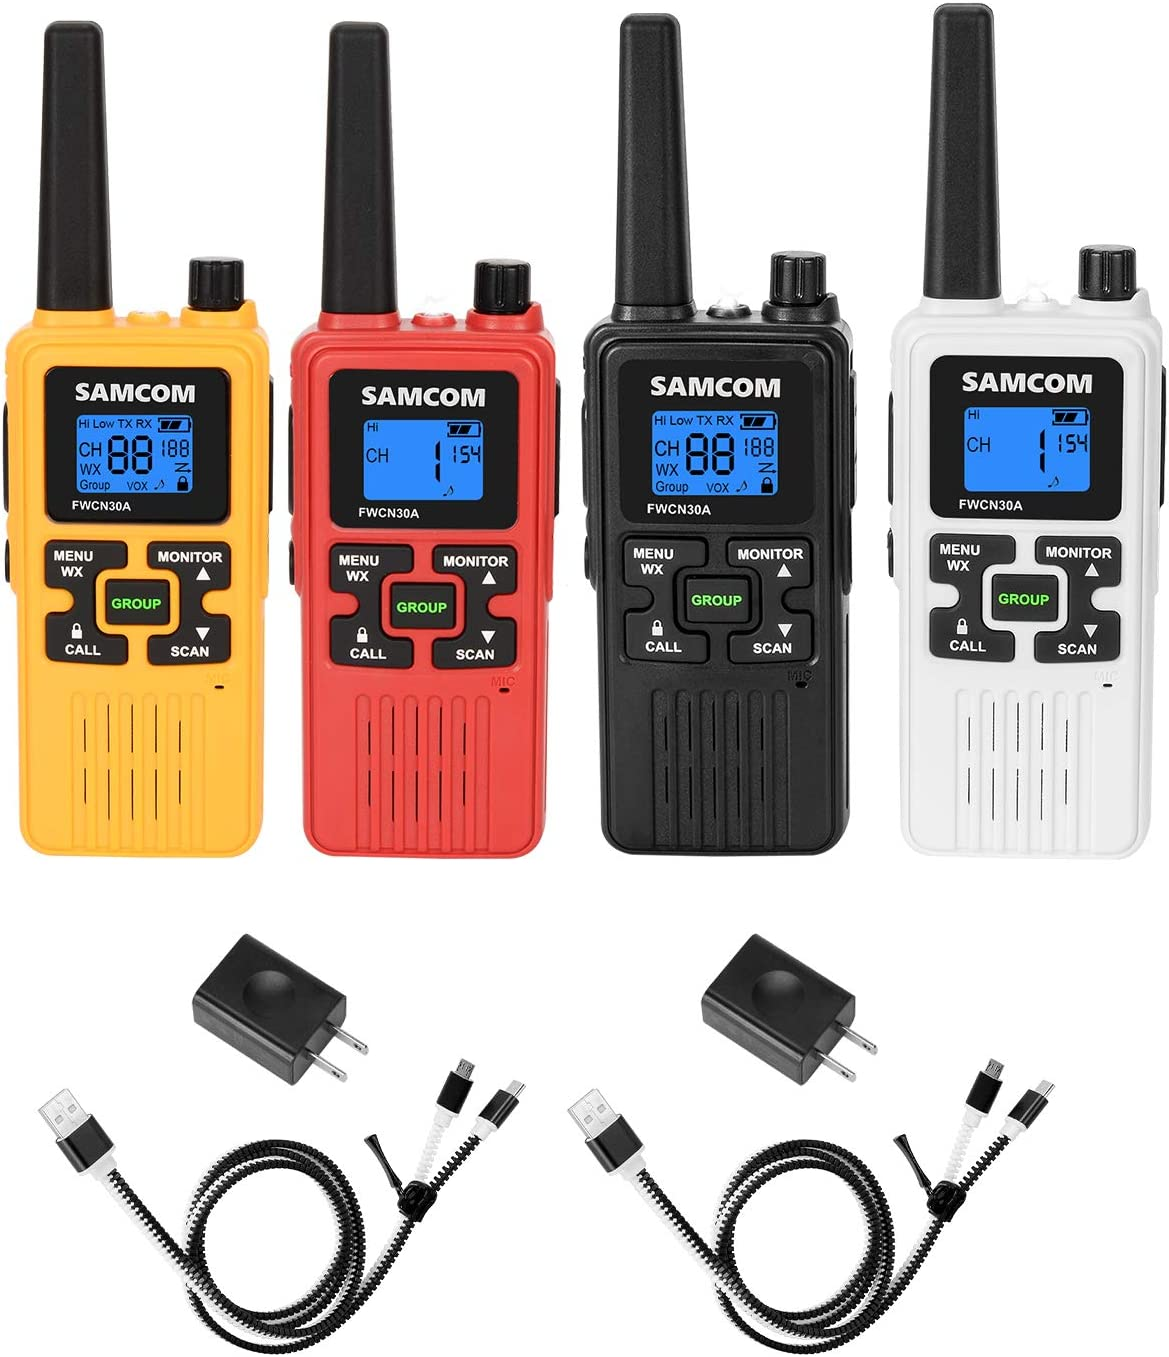 FRS Two Way Radio 22CH, 1250mAh USB Rechargeable Battery LCD Display LED Flashlight, License Free Walkie Talkies 36 Miles Long Range with Group VOX SCAN NOAA Call Alert Function, 4 Packs